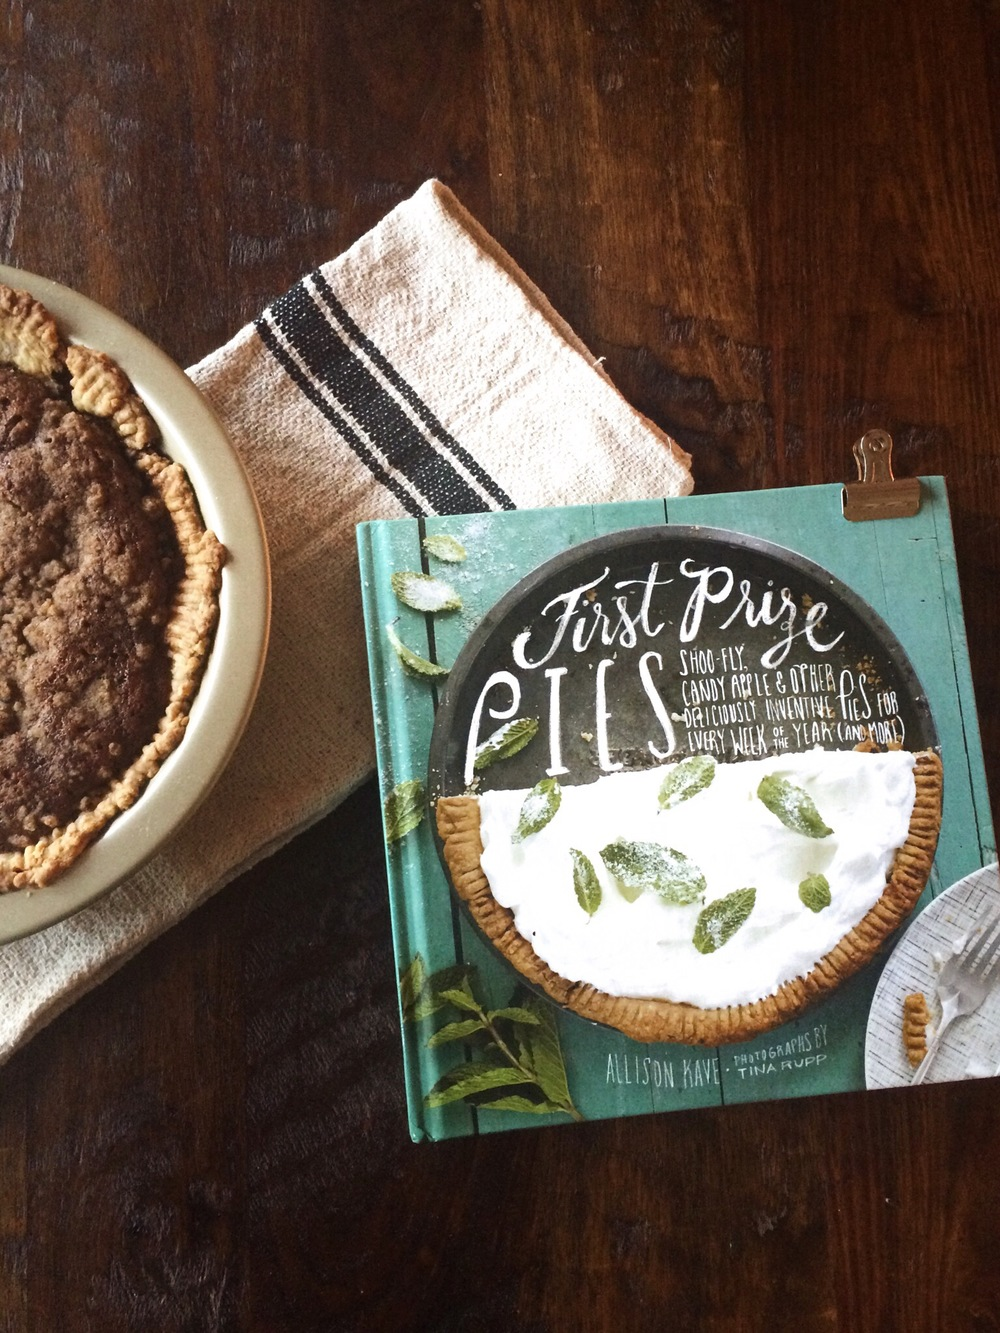 shoo-fly pie first prize pies